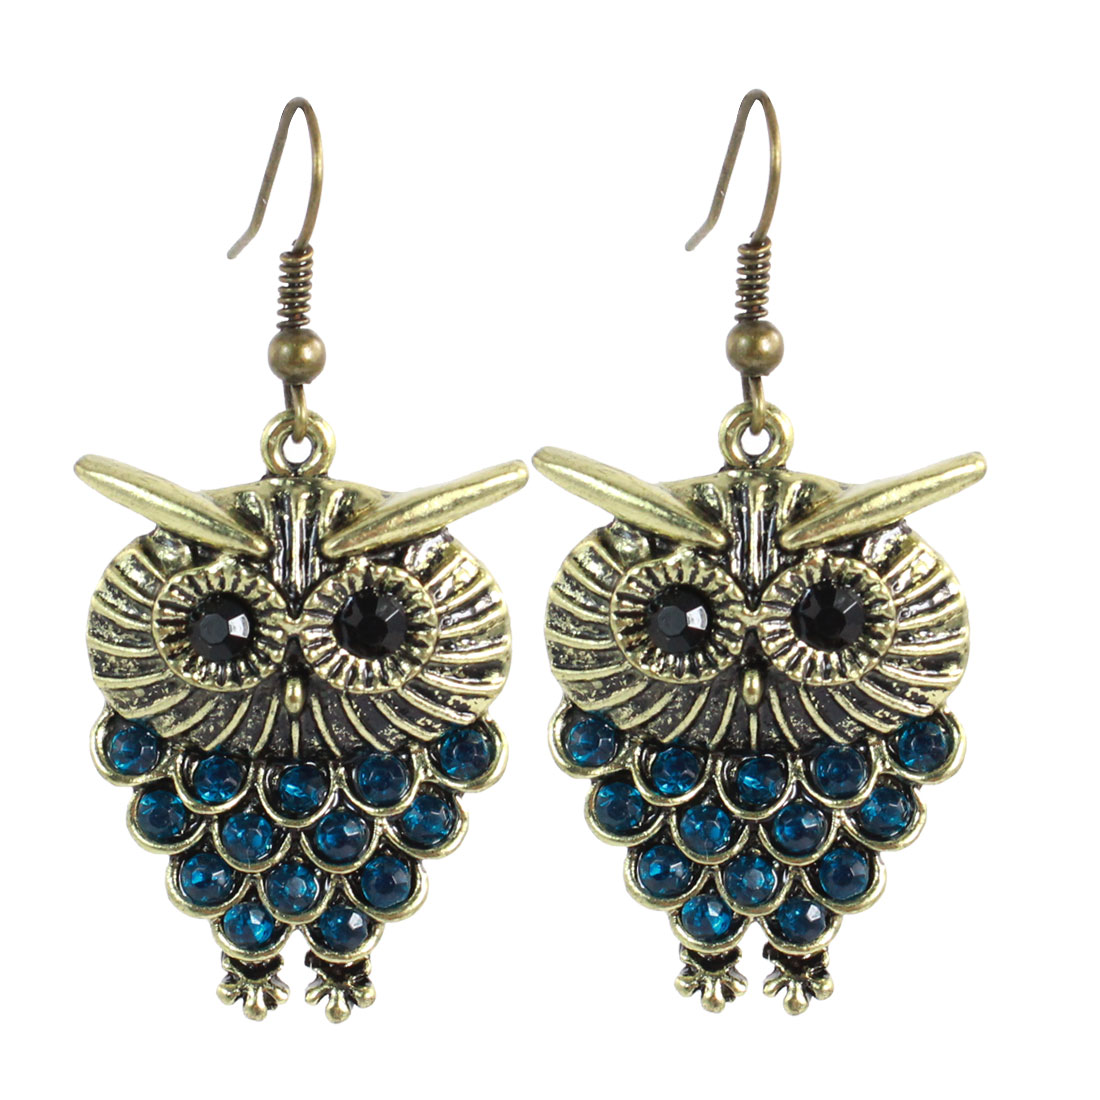 Woman Teal Blue Rhinestones Inlaid Bronze Tone Owl Dangling Hook Earrings Pair